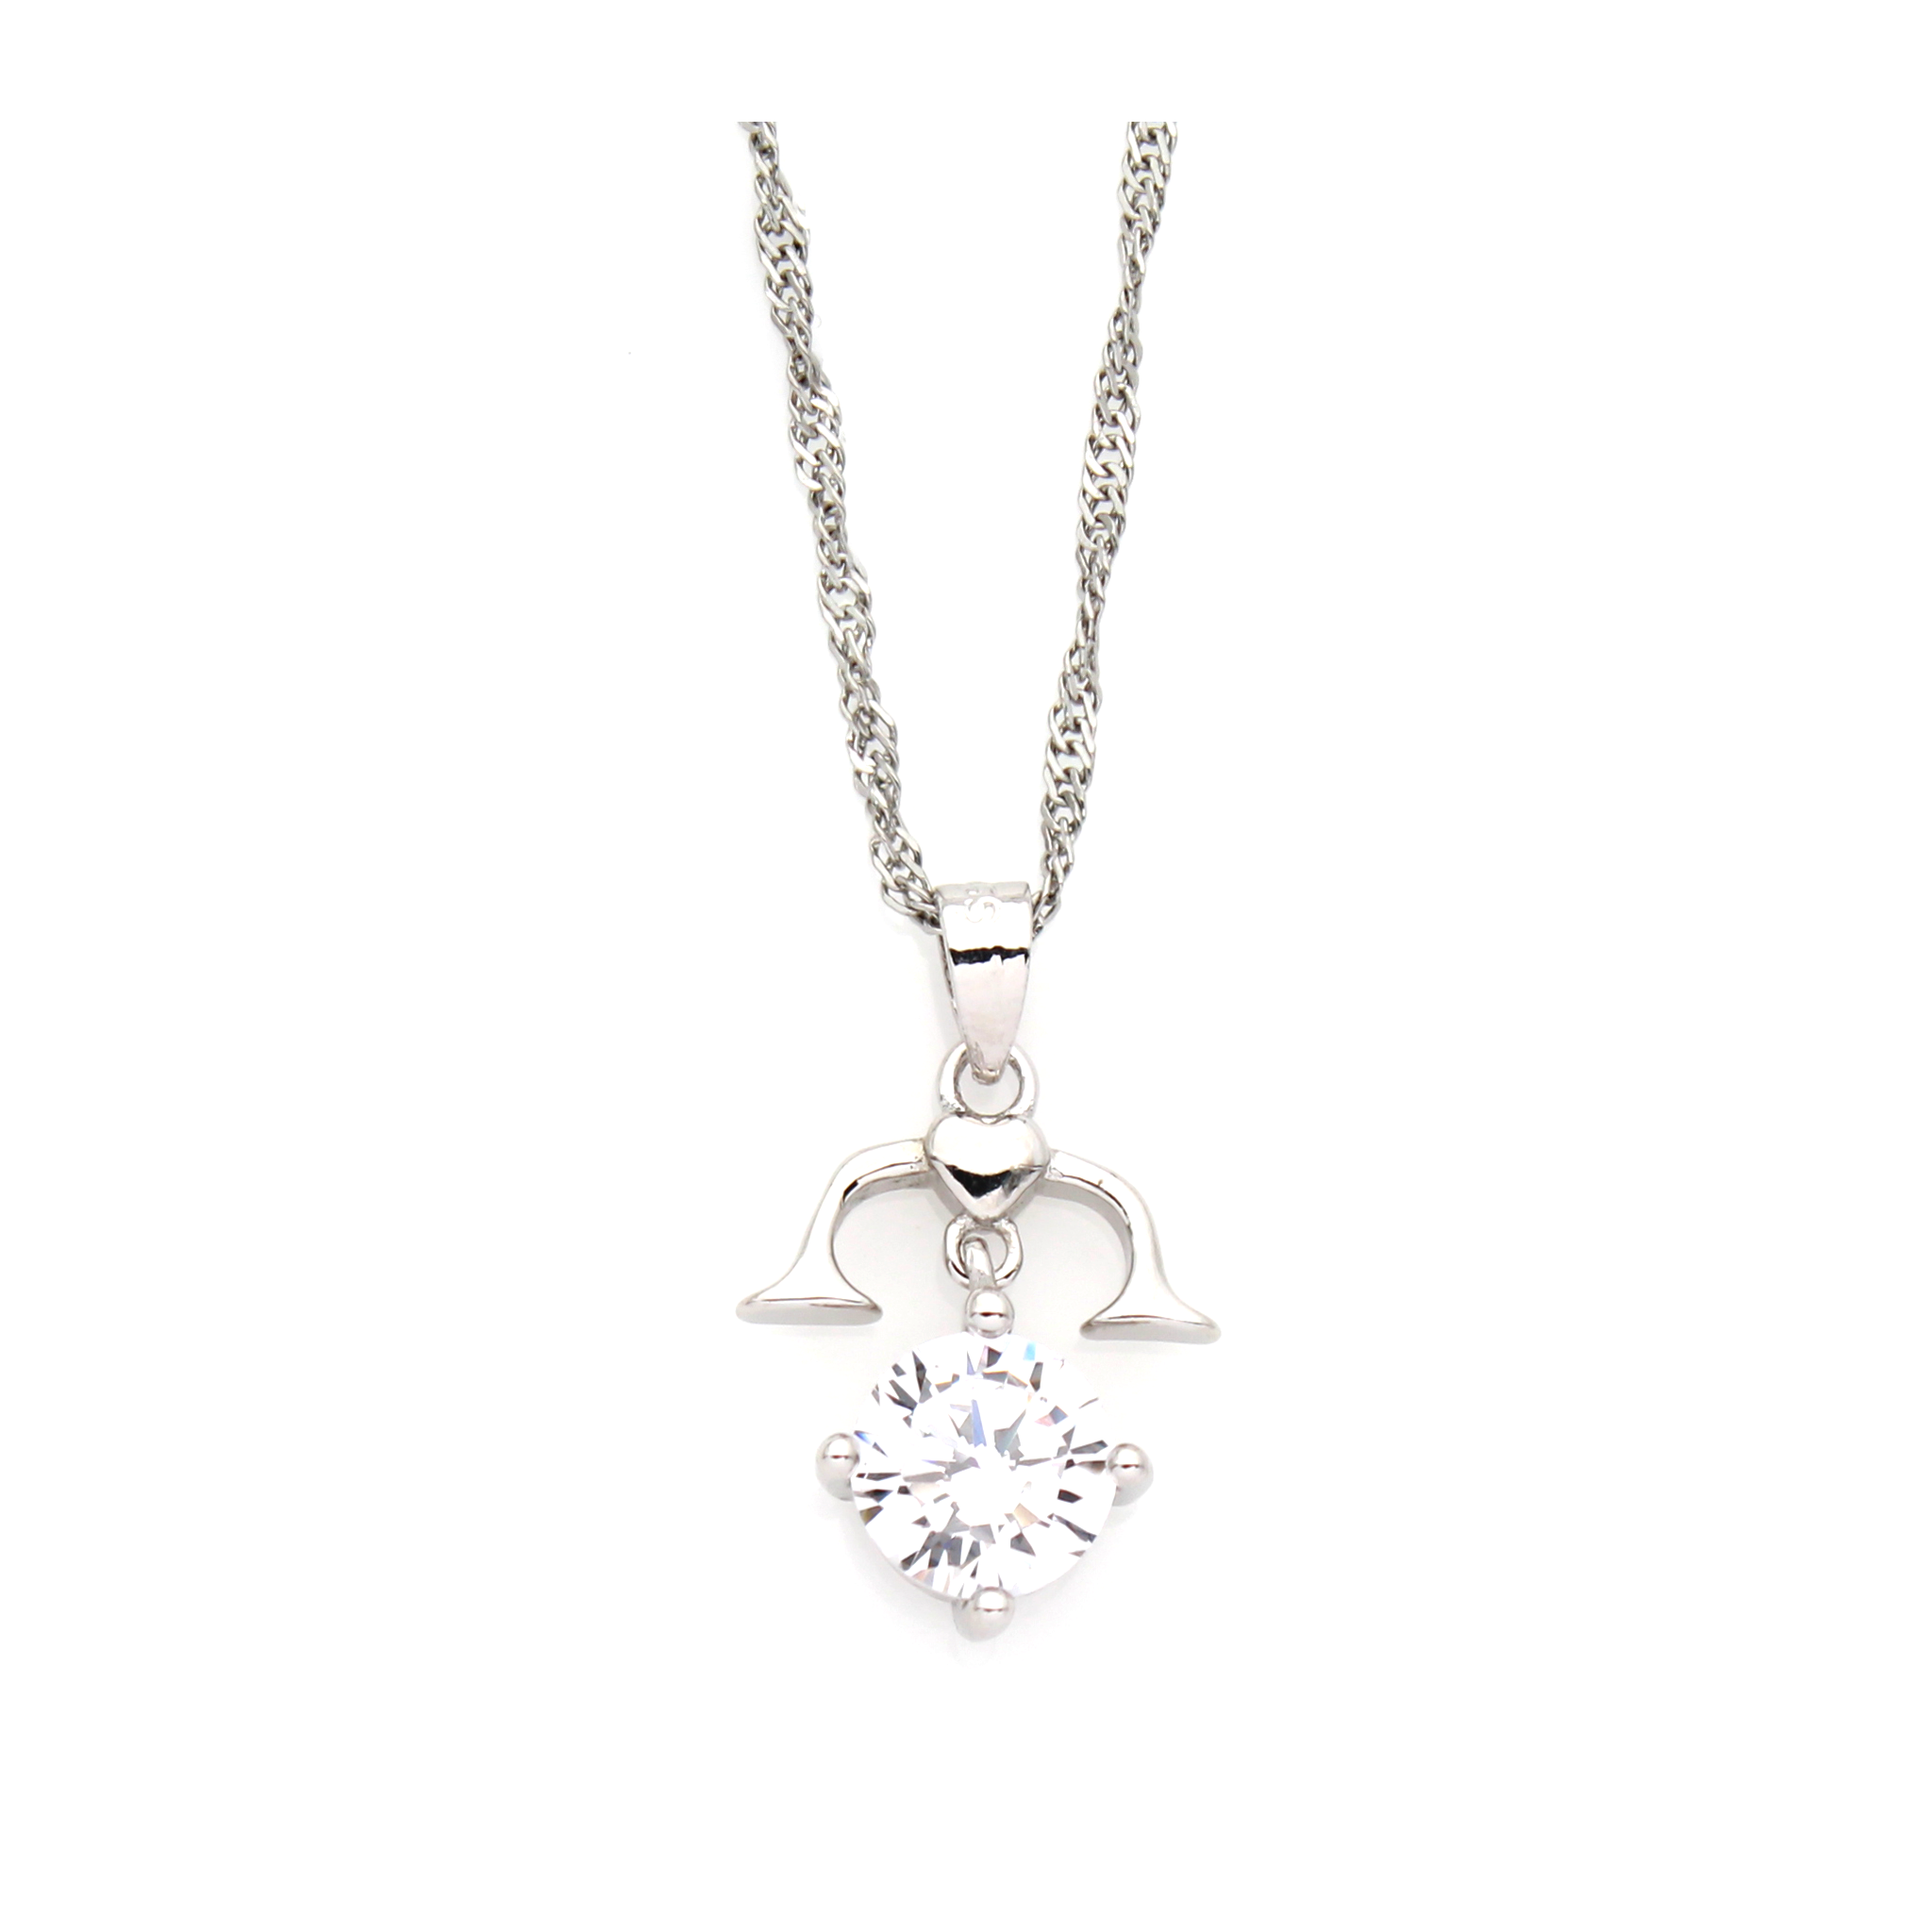 la vita michaela index libra bella earrings silver necklace product